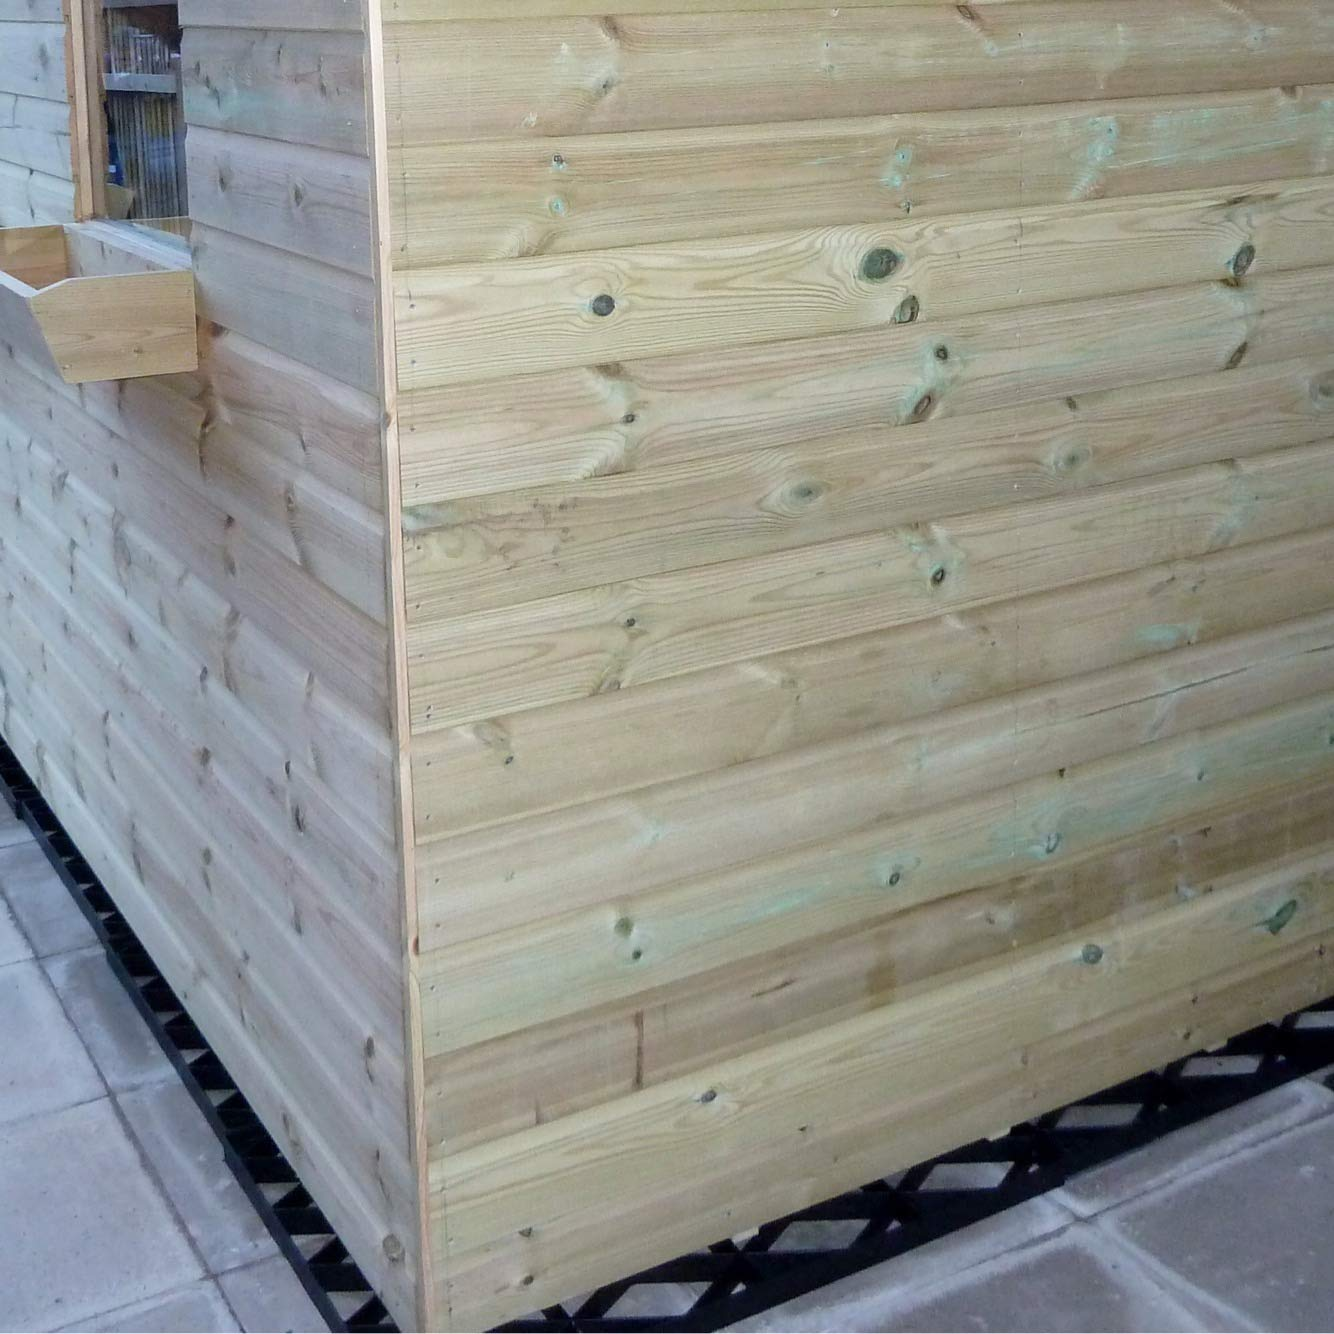 10x10 Feet Garden Shed Base Grids Heavy Duty Full Eco Kit 3.00 x 3.00 Meter Greenhouse Plastic Eco Paving with Included Membrane